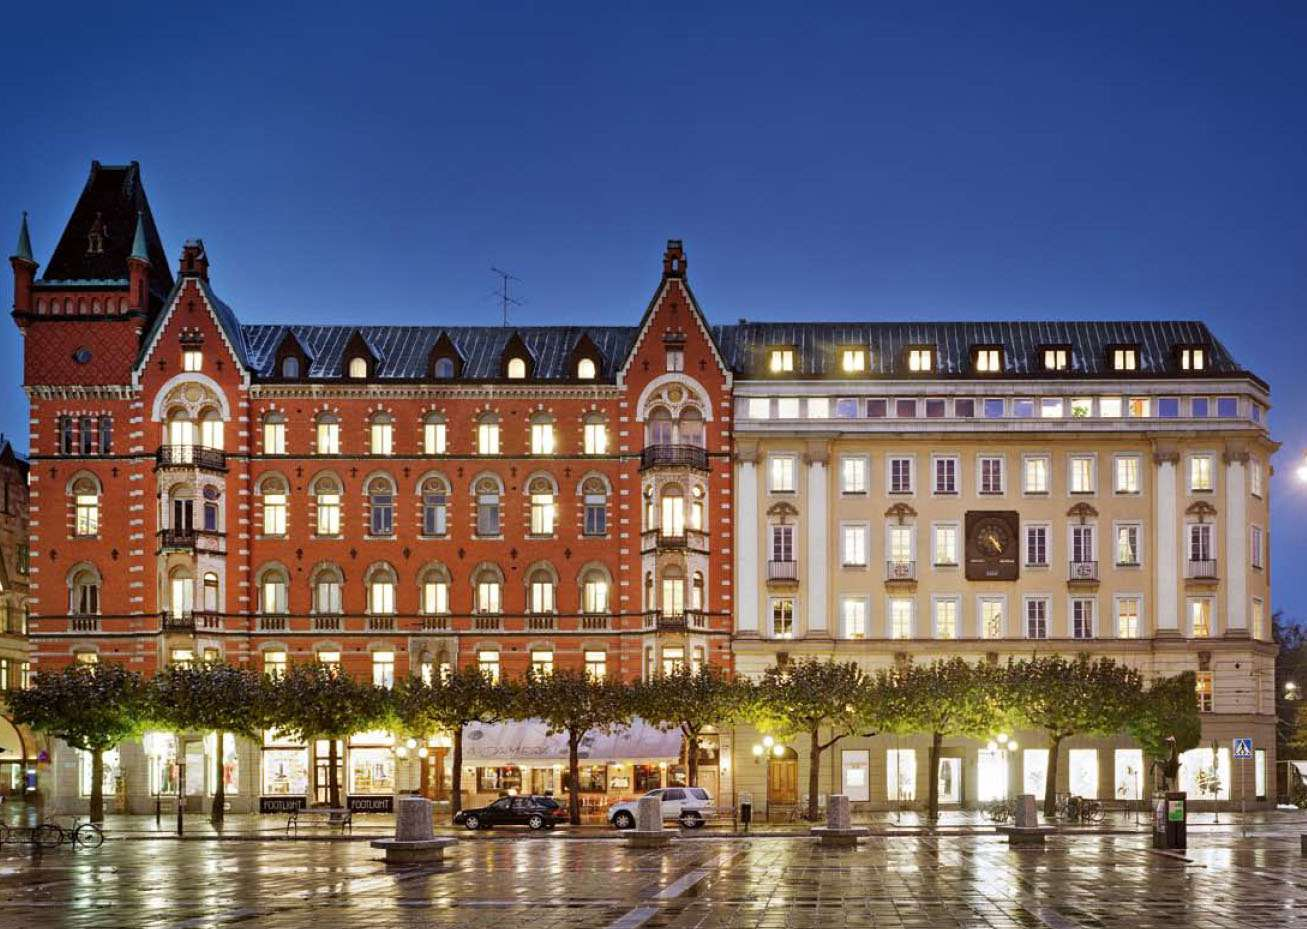 Nobis Hotel, now a luxury hotel, was the site of the Stockholm Syndrome bank robbery